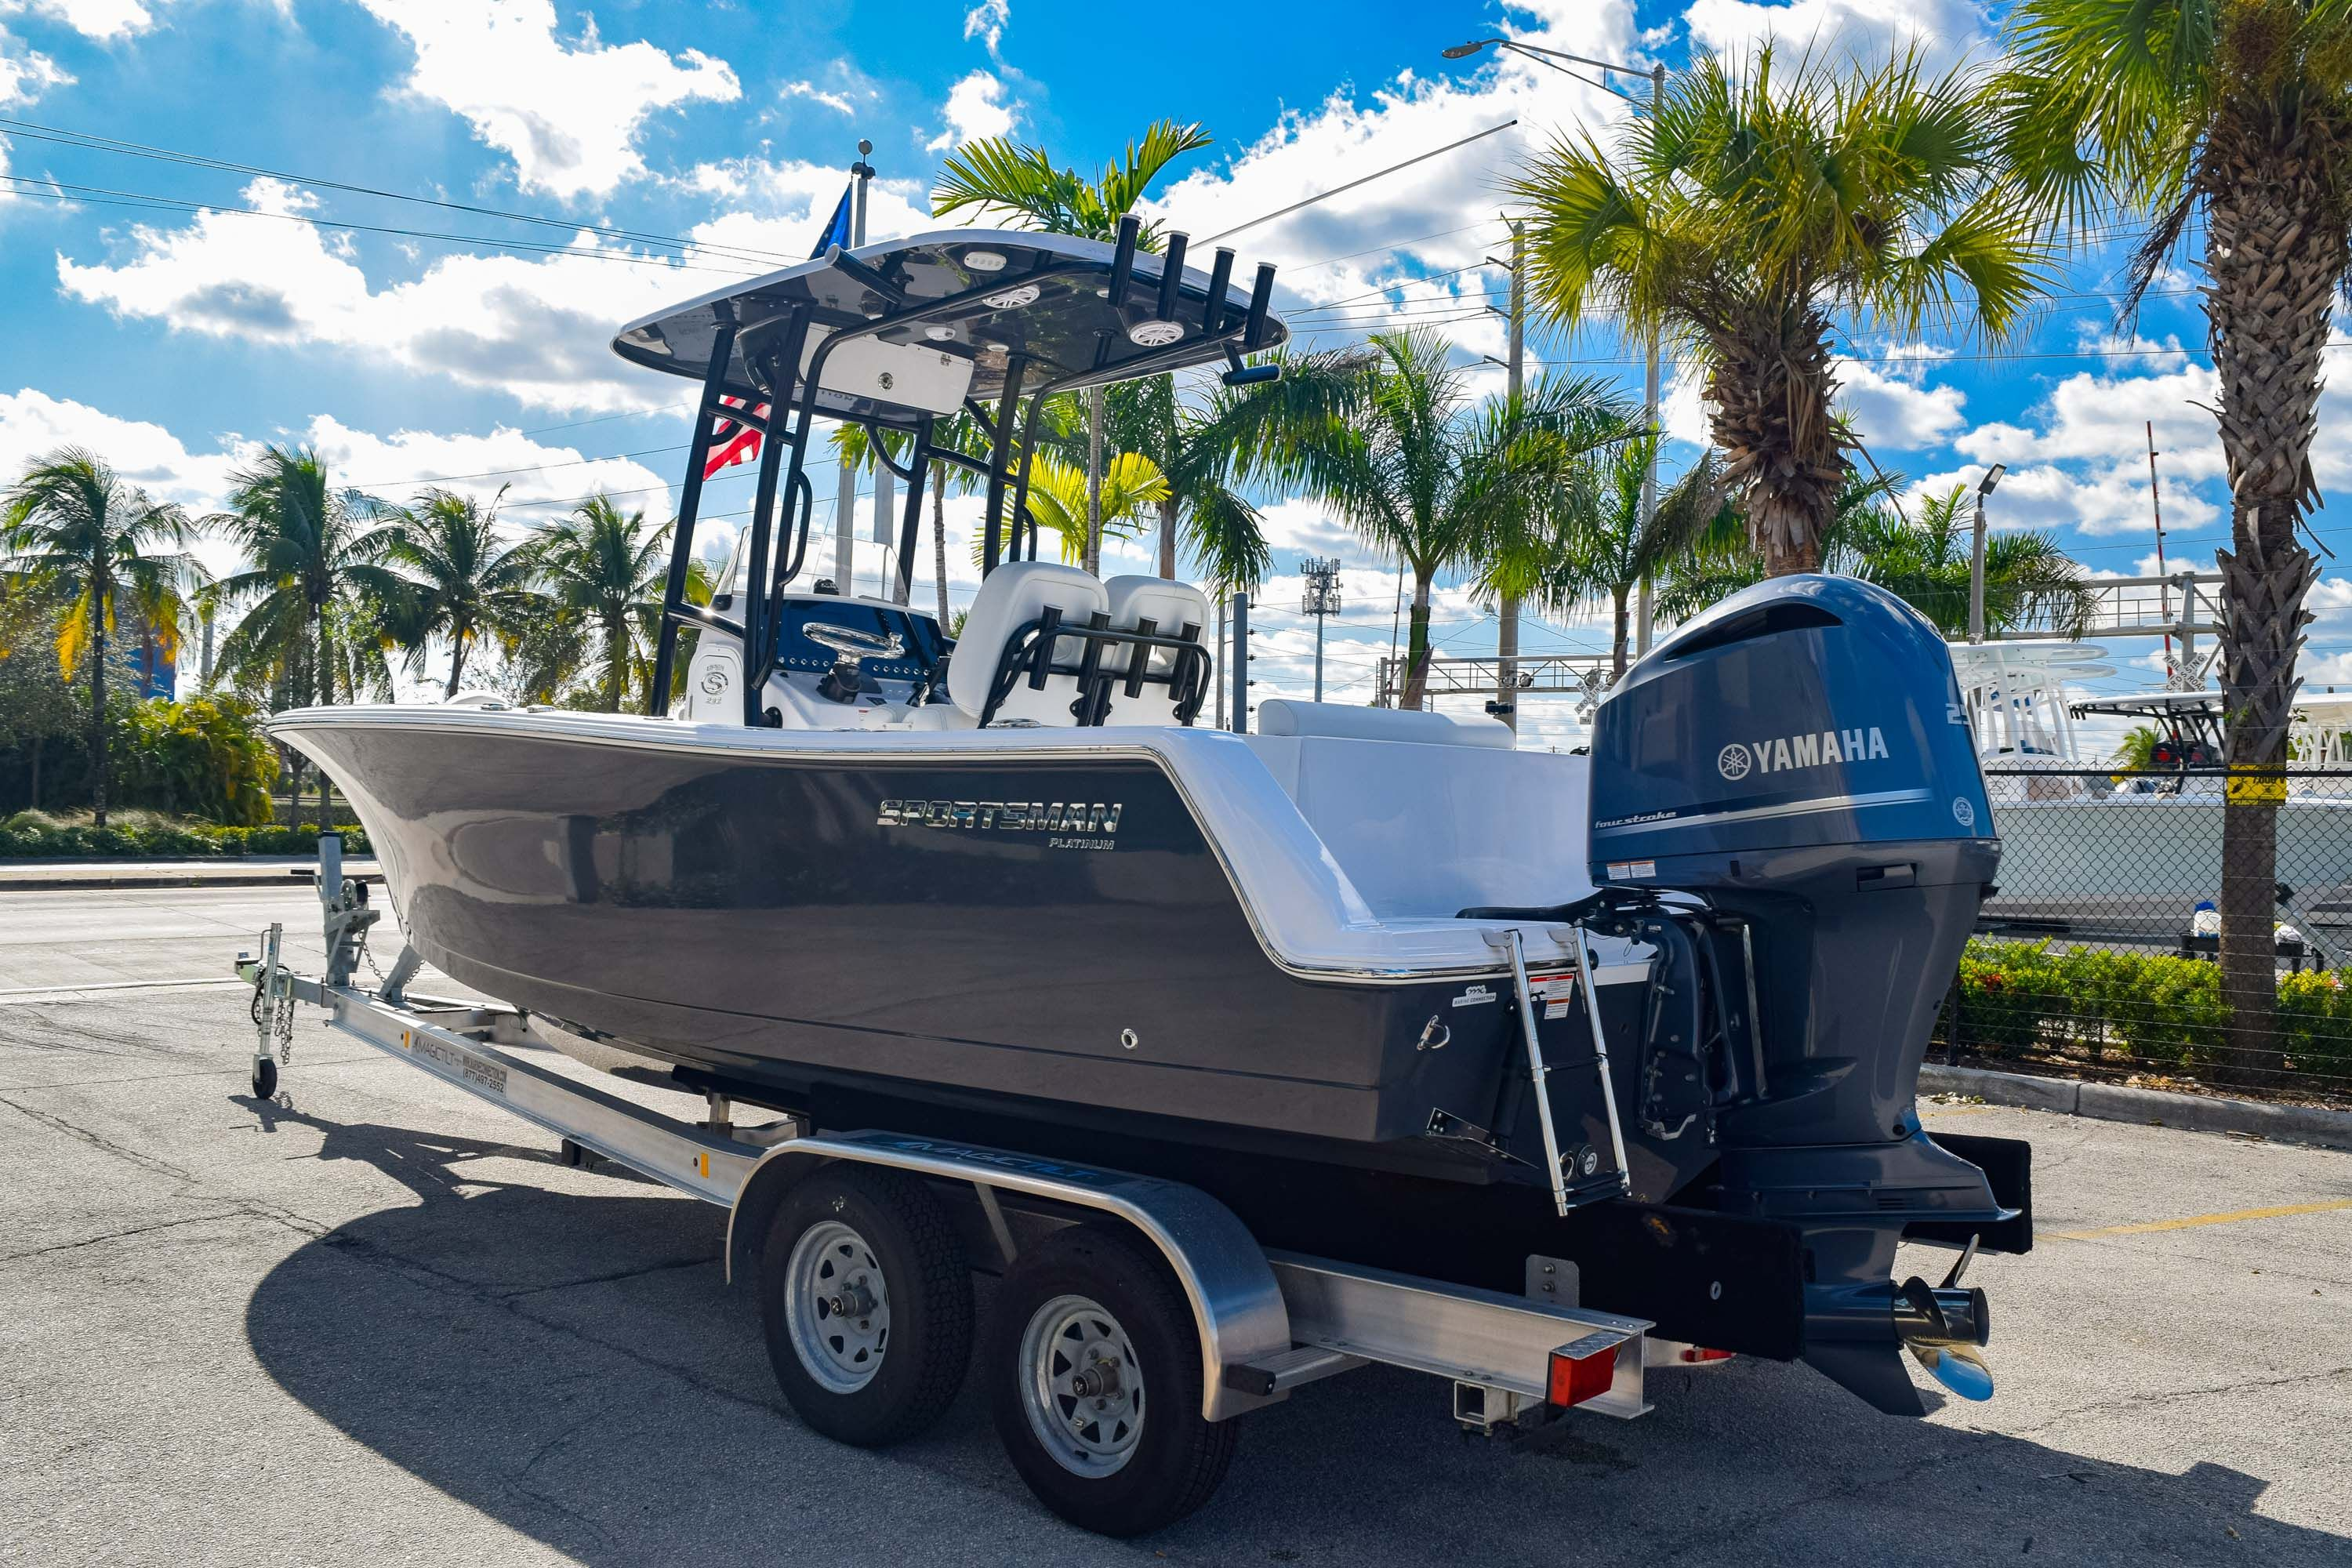 Thumbnail 5 for New 2020 Sportsman Open 232 Center Console boat for sale in Fort Lauderdale, FL